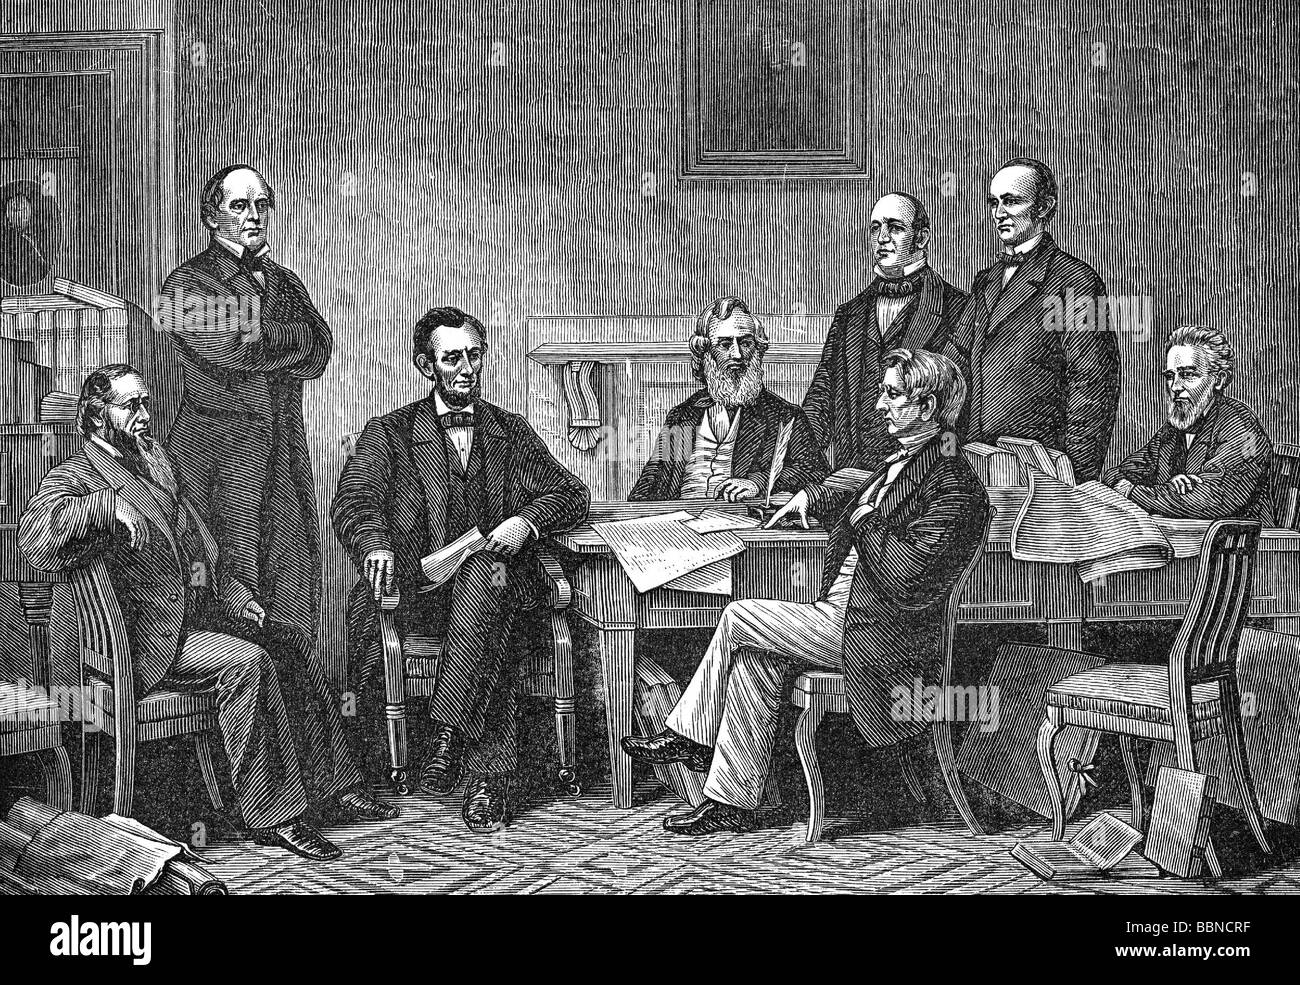 reputations of president abraham lincoln and his role to emancipation proclamtion Abraham lincoln in his office emancipation unlike many abolitionists, president lincoln understood he couldn't eliminate slavery without first saving the union emancipation was justified by a military necessity to preserve the union if the proclamation of emancipation was essentially a.